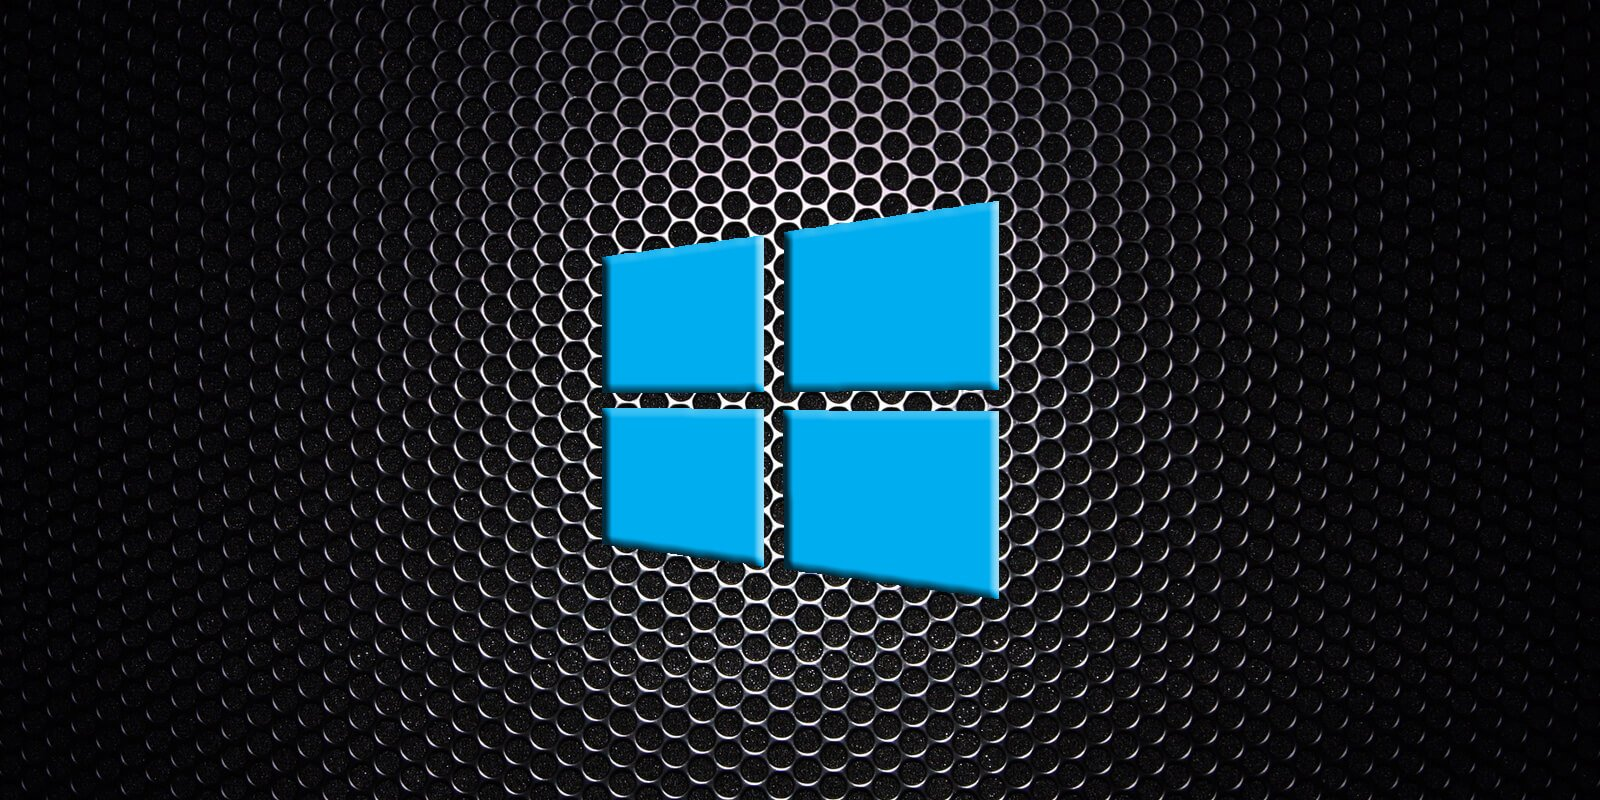 Windows 10X feature will prevent unauthorized factory resets - BleepingComputer